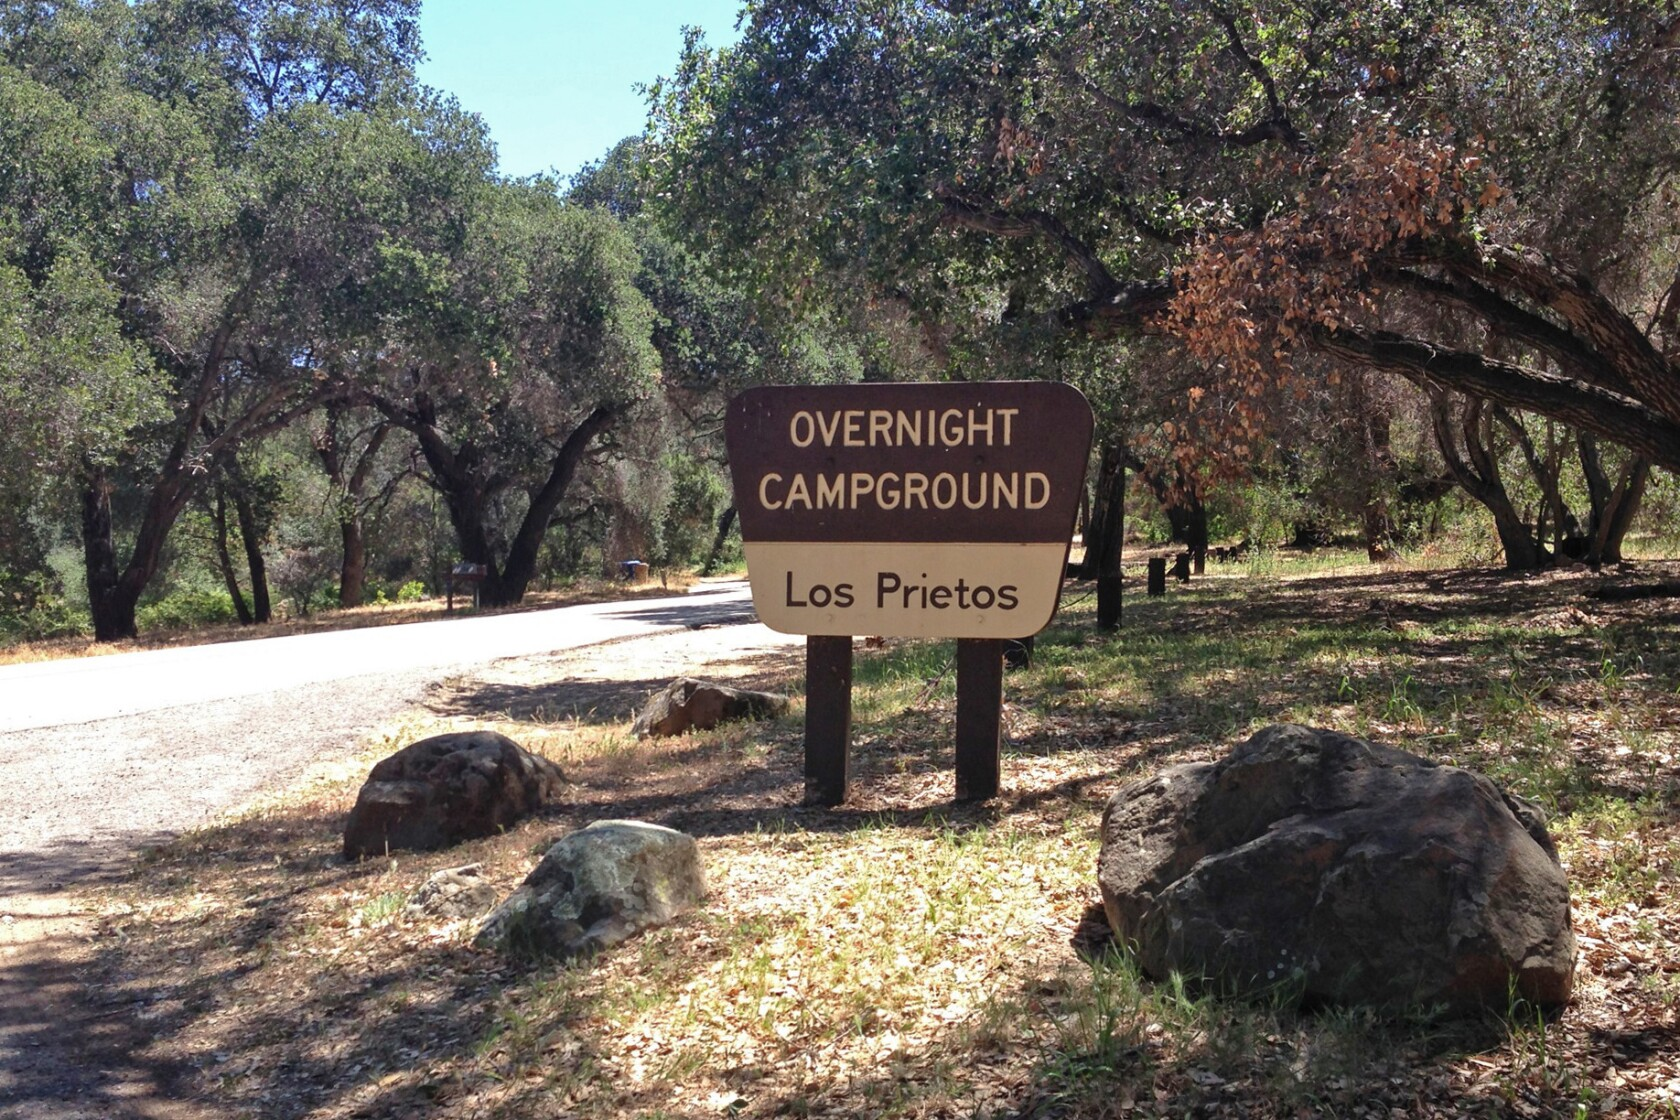 Los Prietos Campground is a pleasant place to rough it - Los